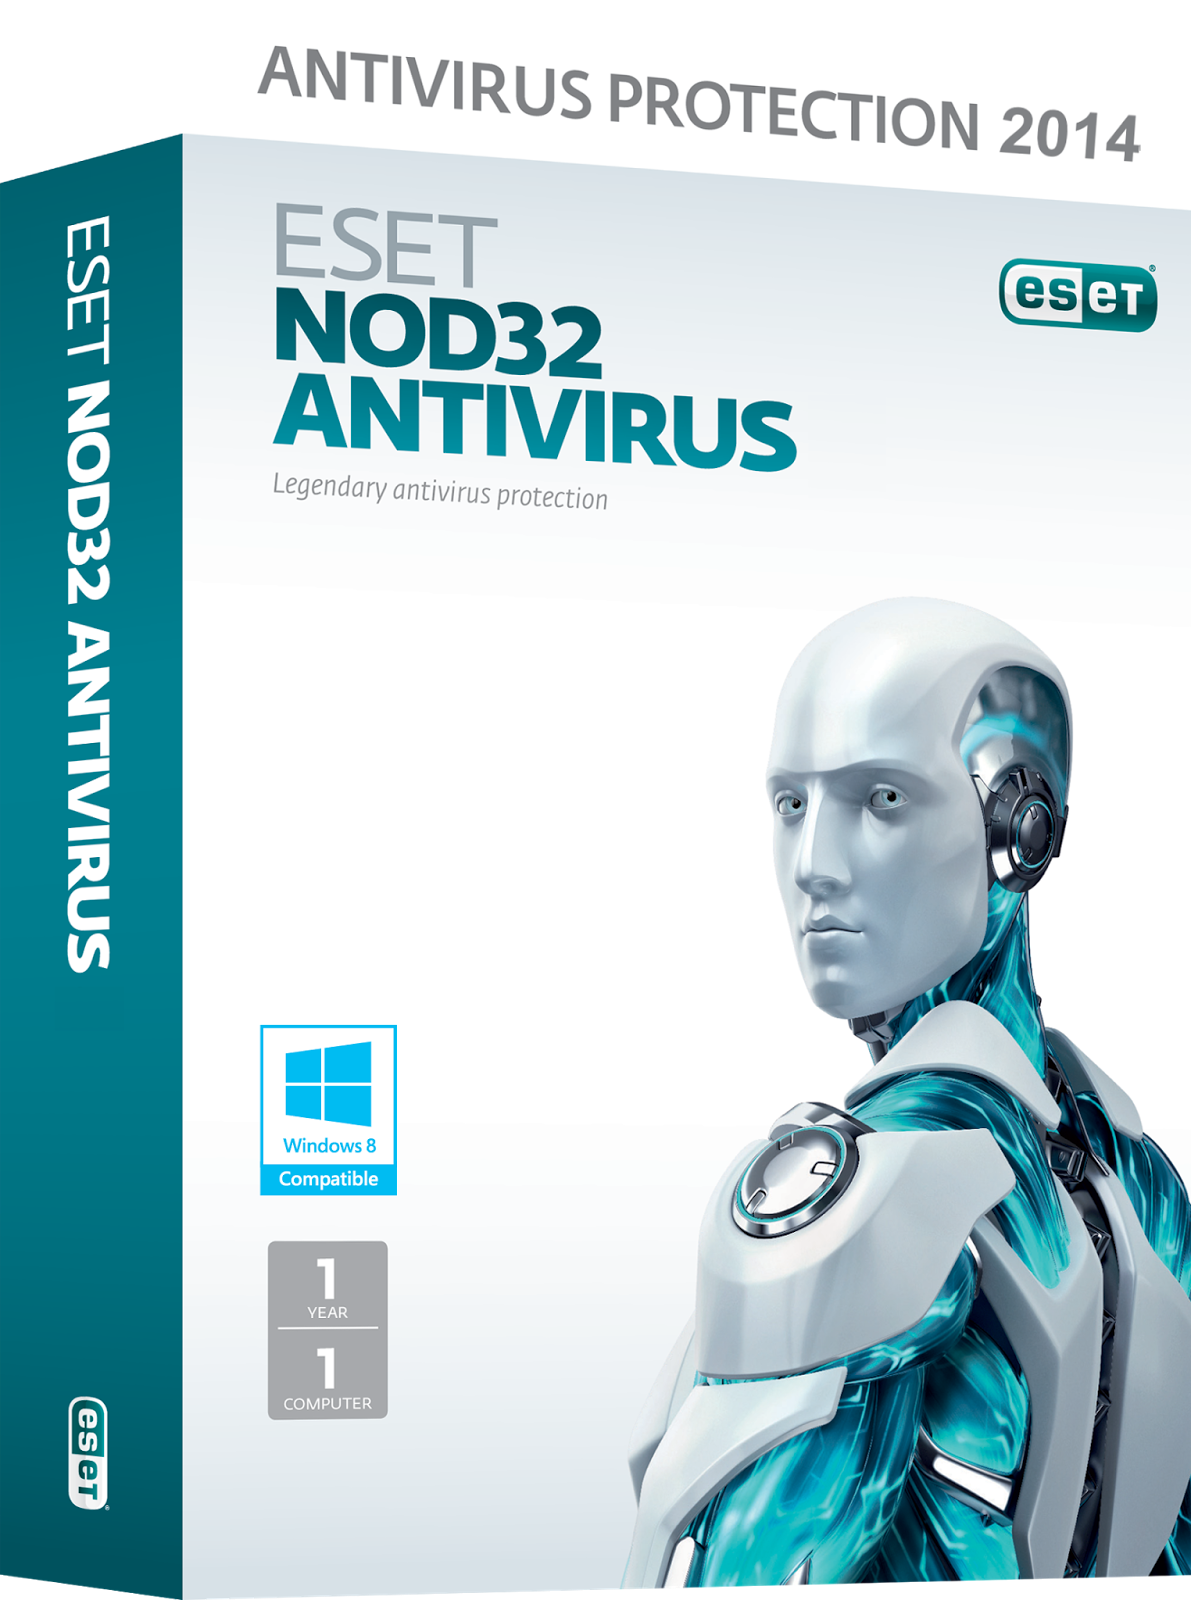 ESET NOD32 Antivirus 8.0.304.0 Crack FULL Version Image